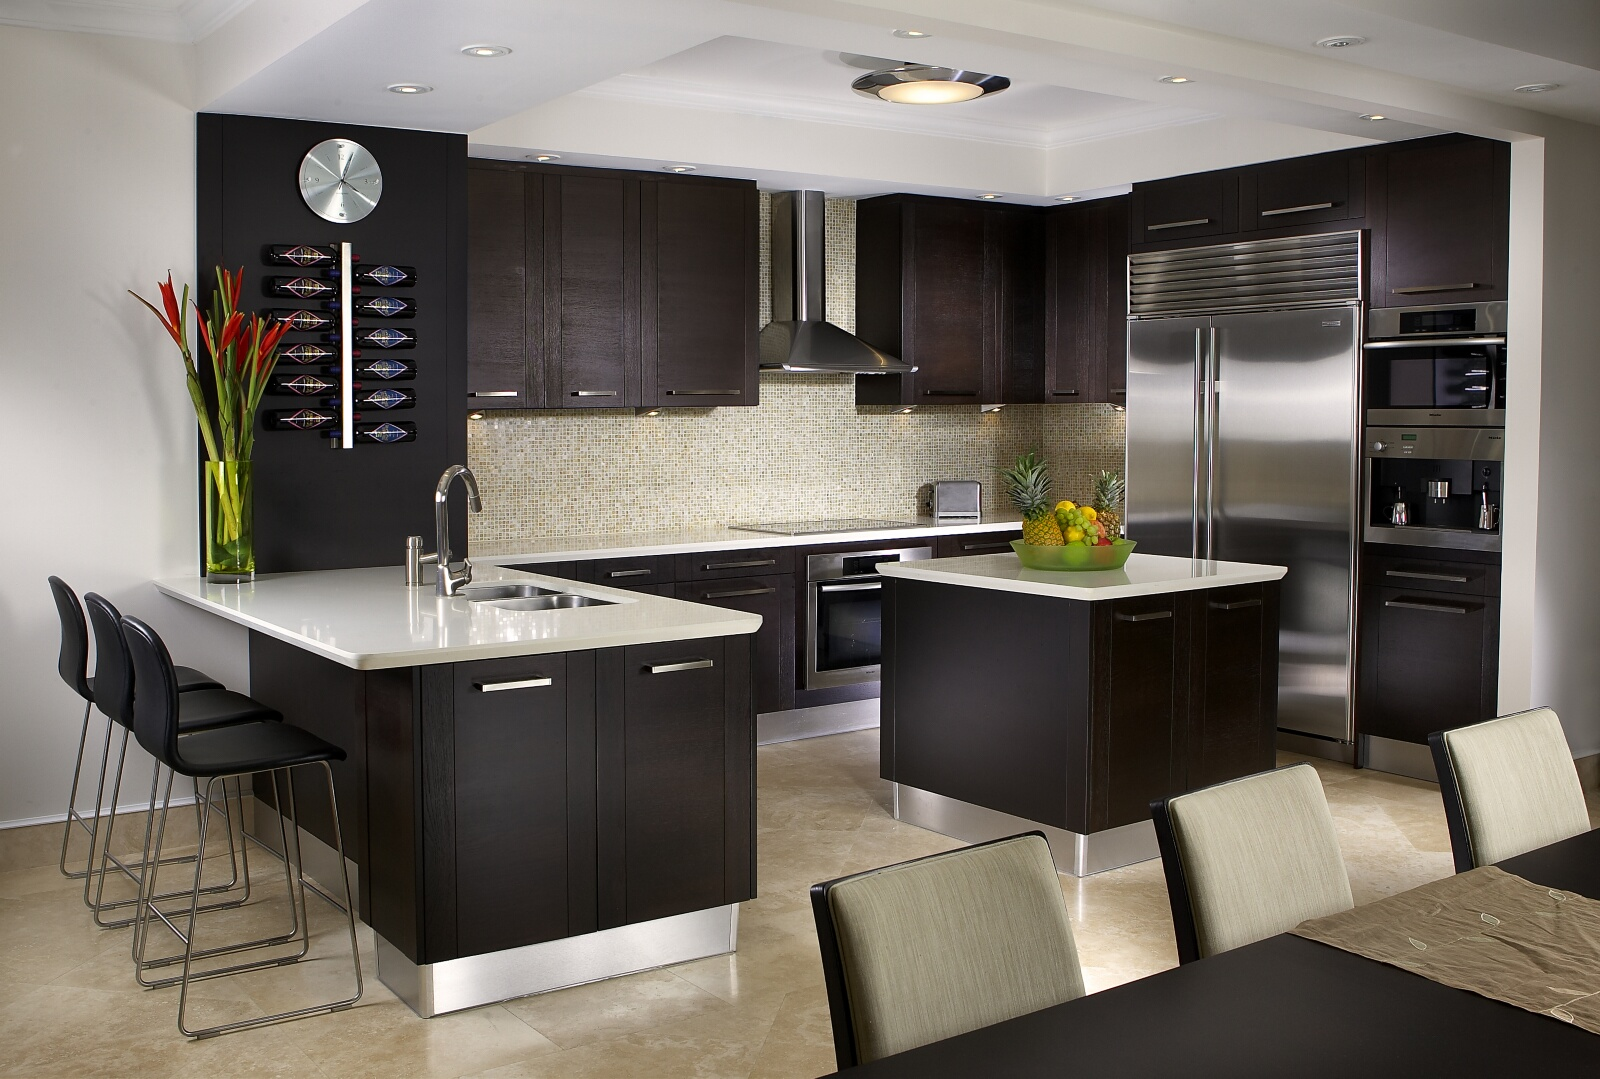 Kitchen interior design services miami florida for Interior design ideas for kitchens